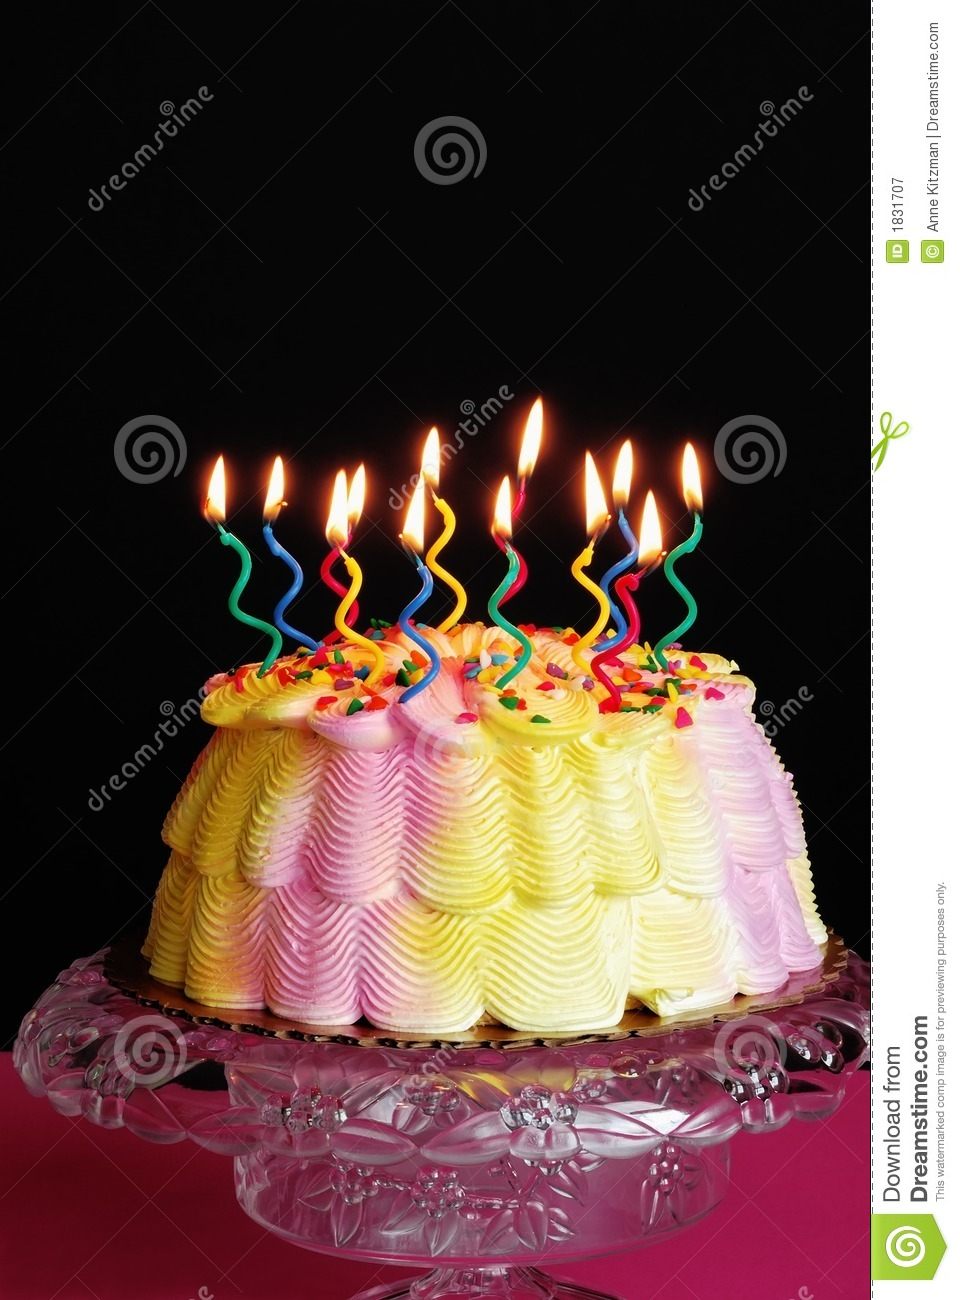 Lighted Birthday Cake Stock Image Image Of Baked Copyspace 1831707